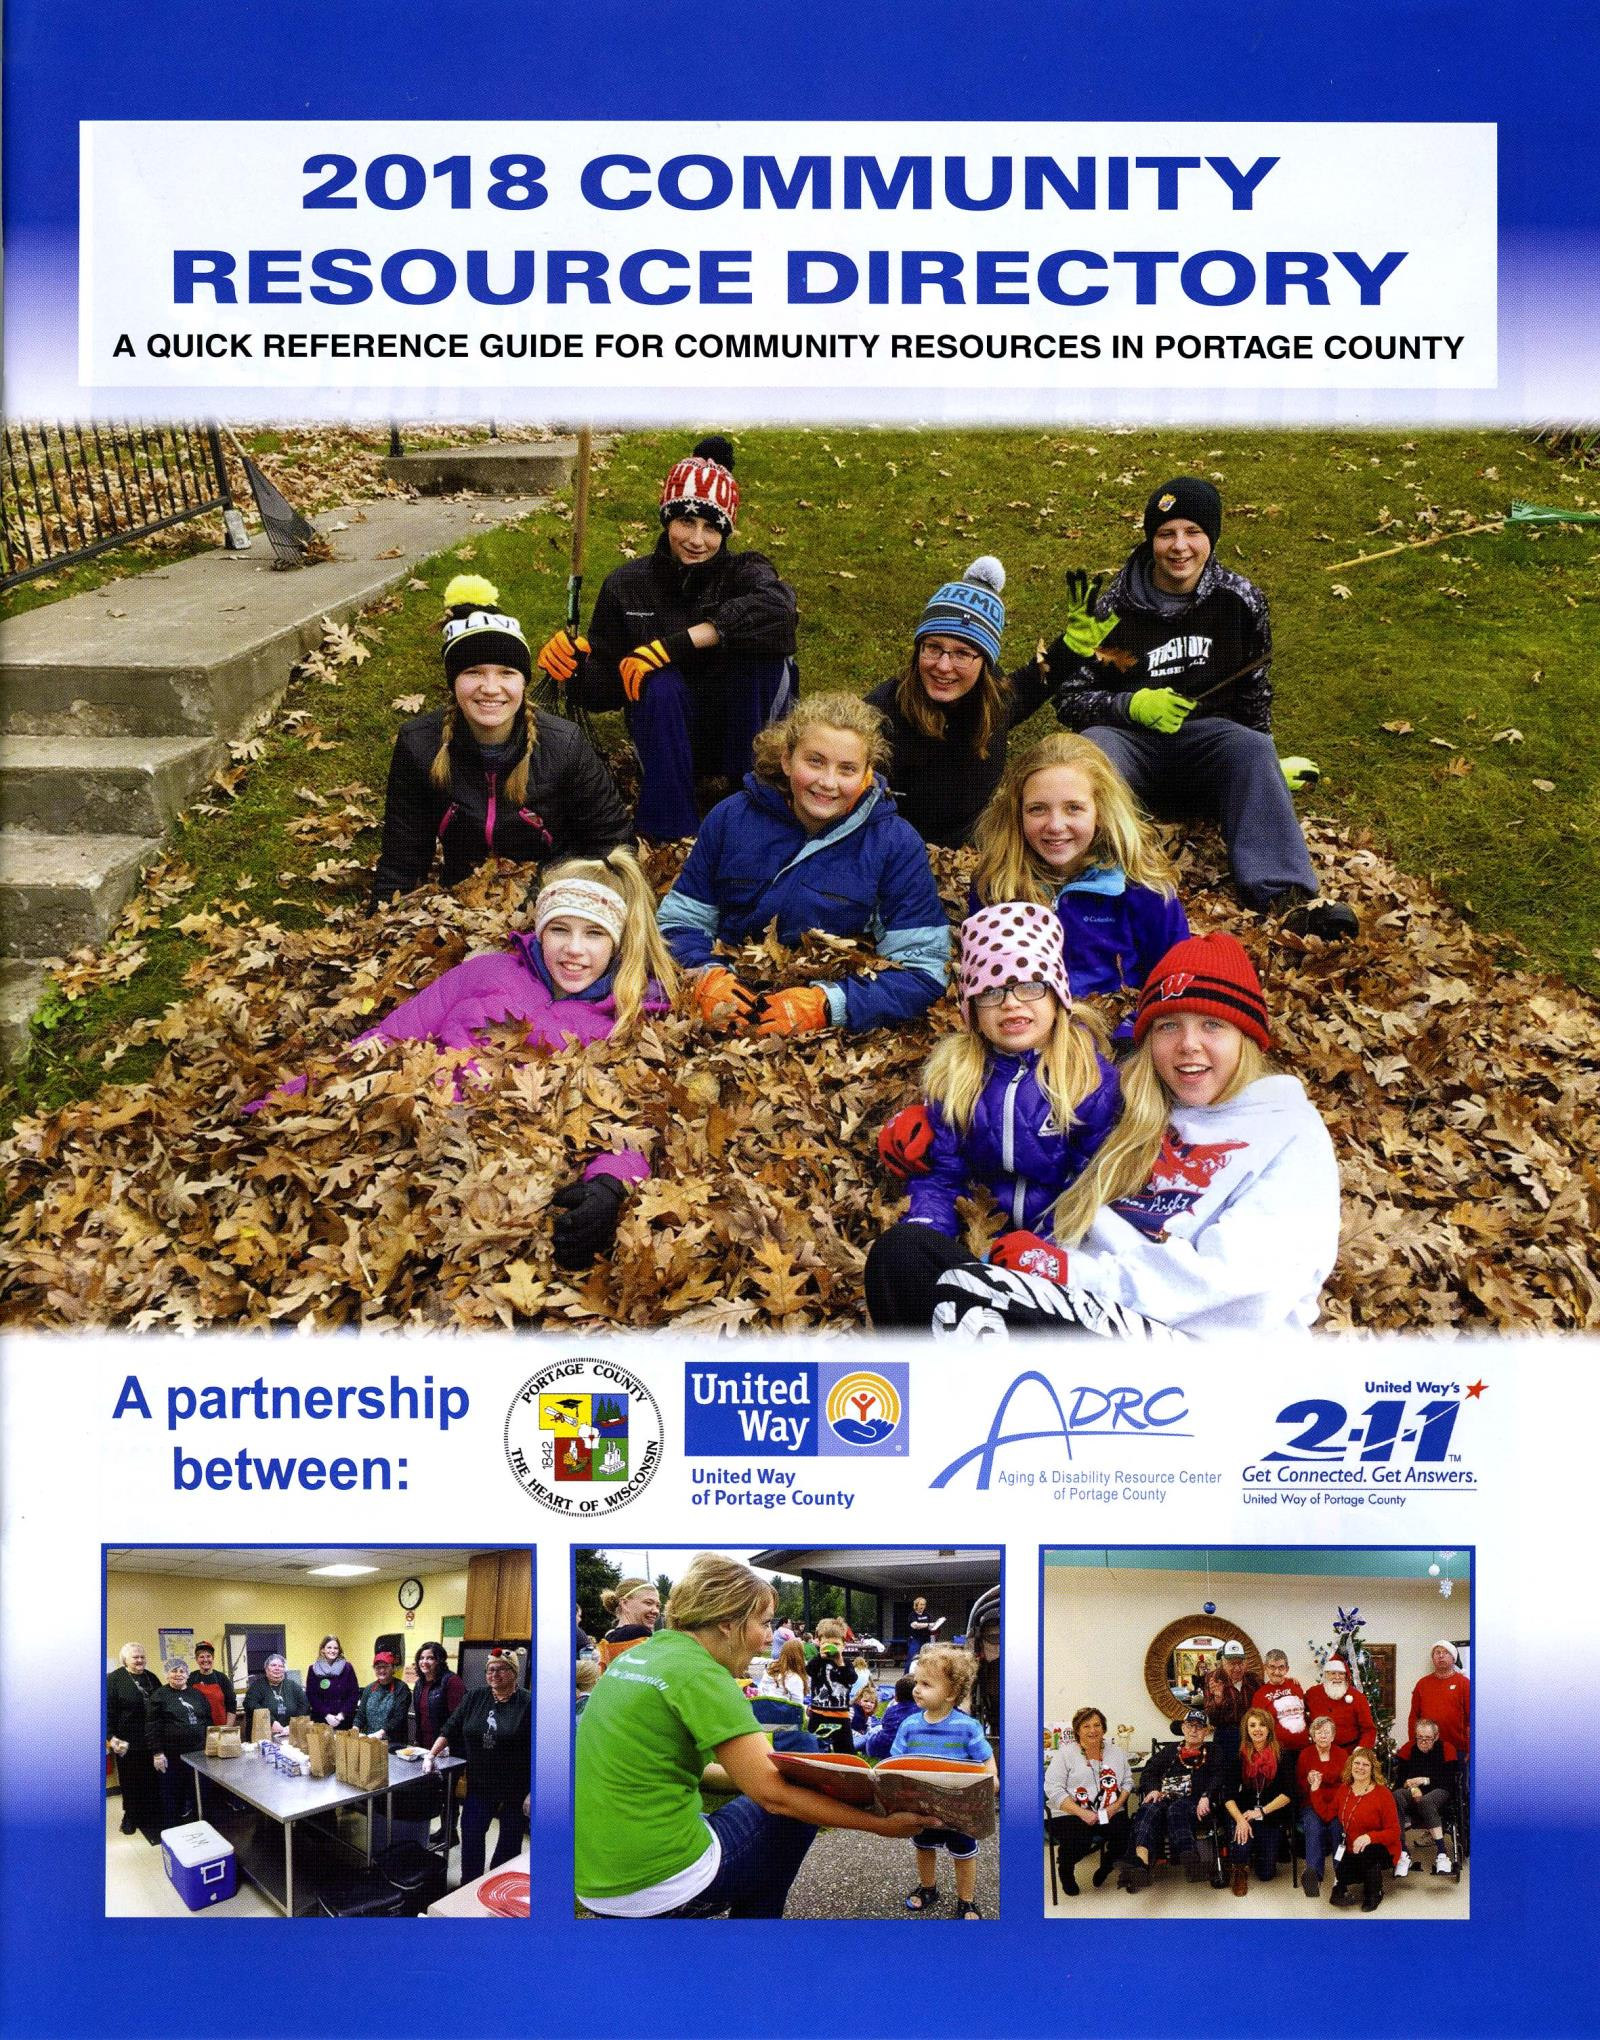 2018 Community Resource Directory